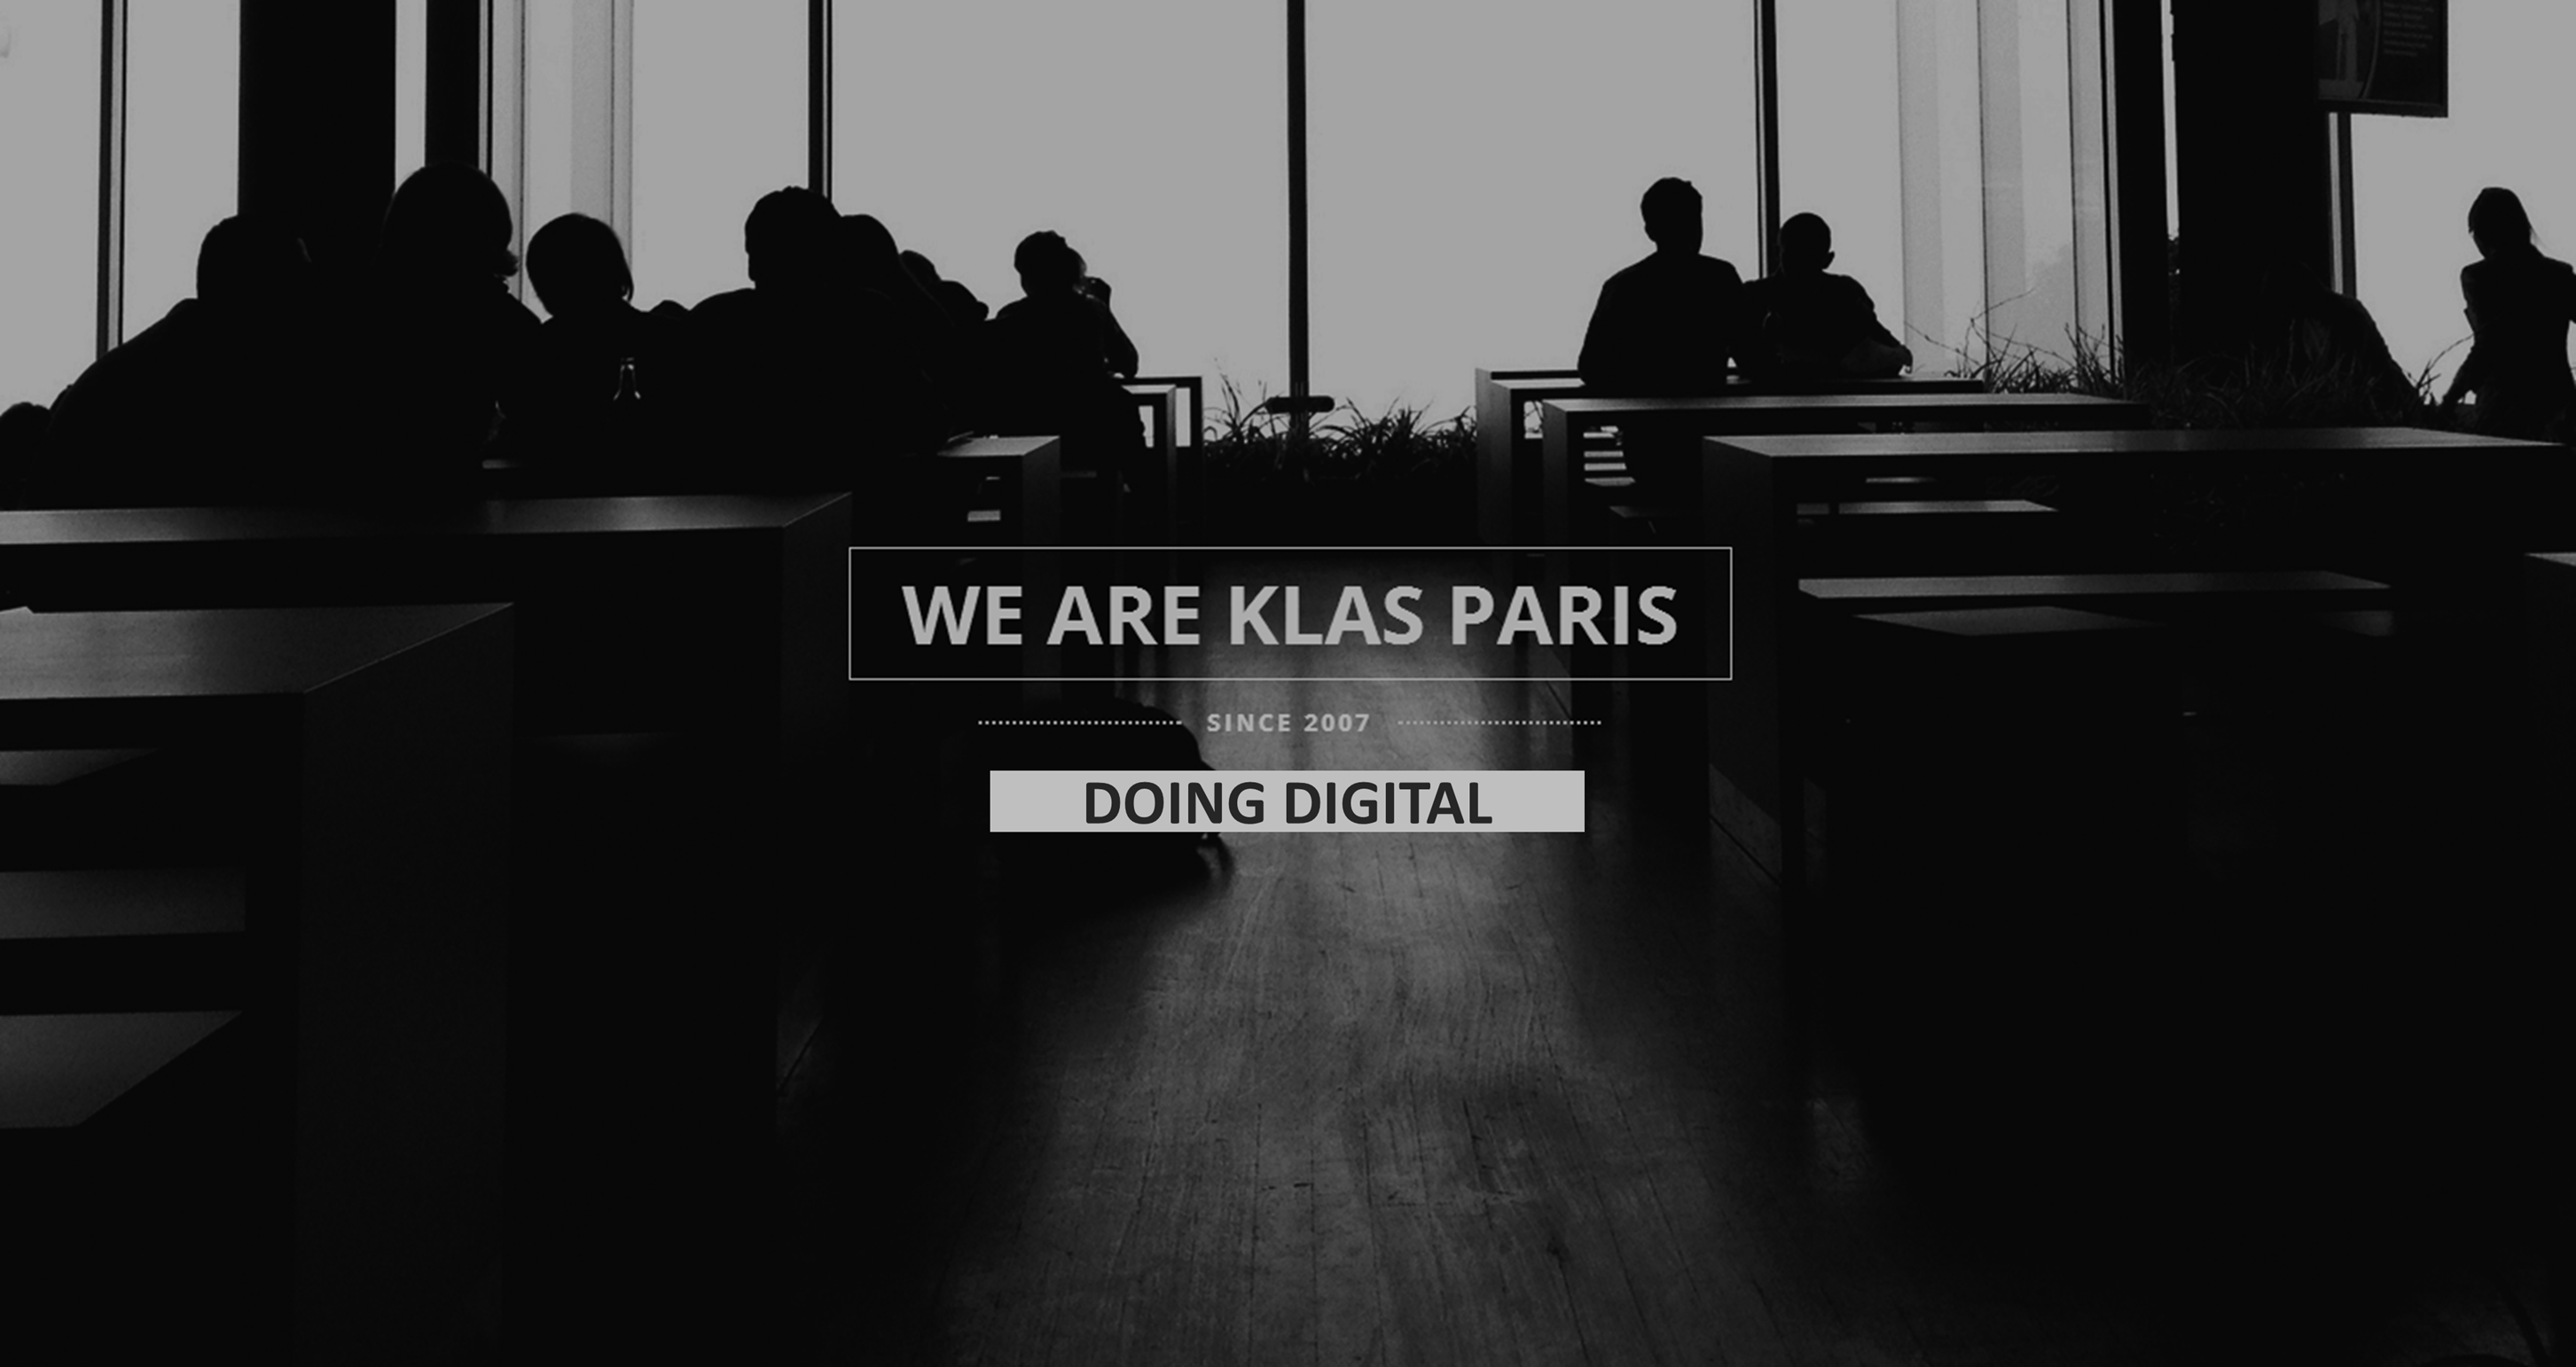 KLAS PARIS - DOING DIGITAL SINCE 2007